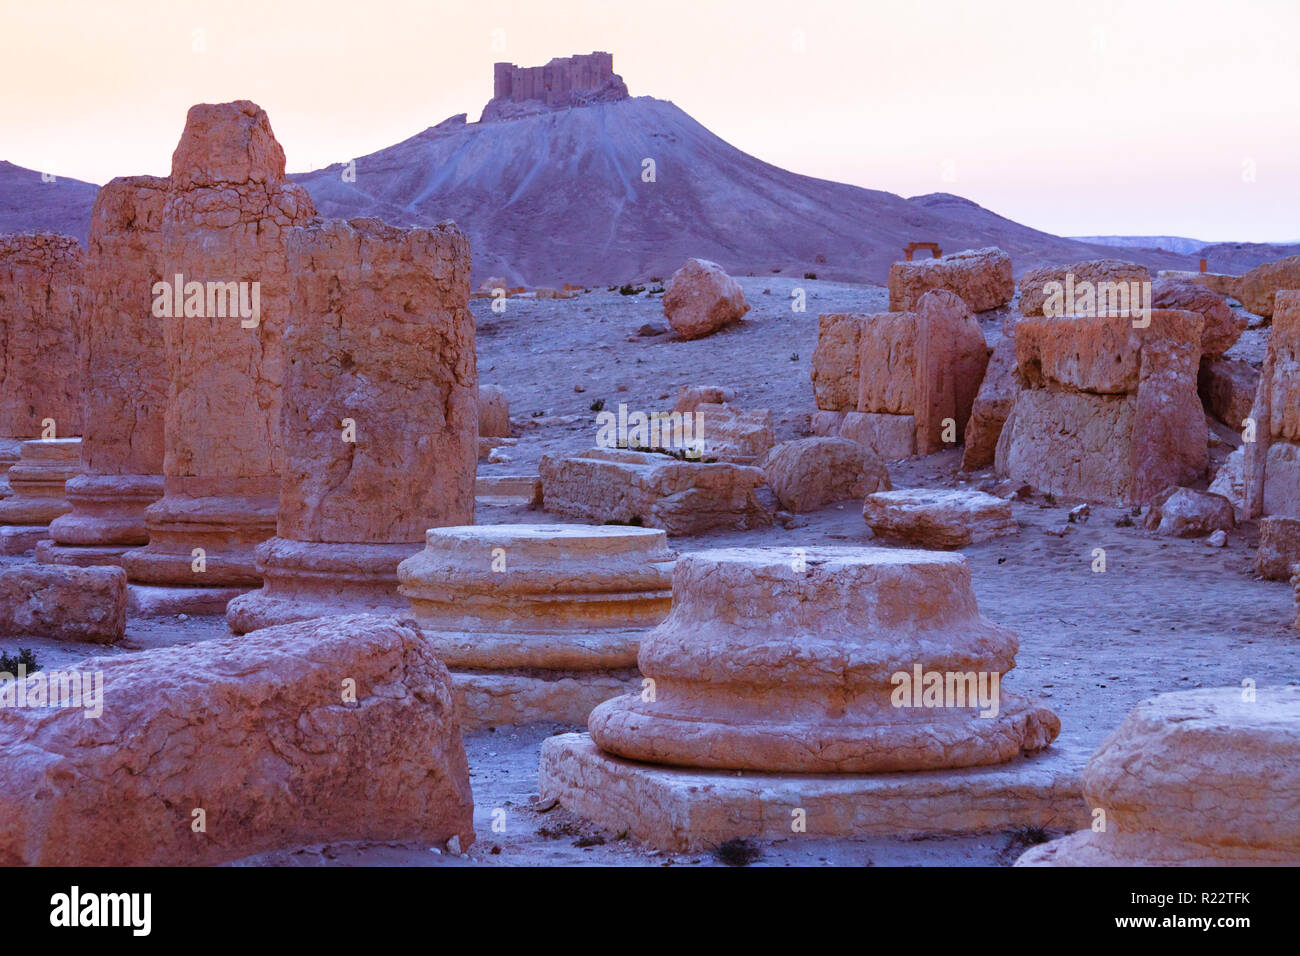 Palmyra, Homs Governorate, Syria - May 27th, 2009 : Ruins of Palmyra at sunset with the 13th century Qalaat Shirkuh citadel also known as Fakhr-al-Din - Stock Image